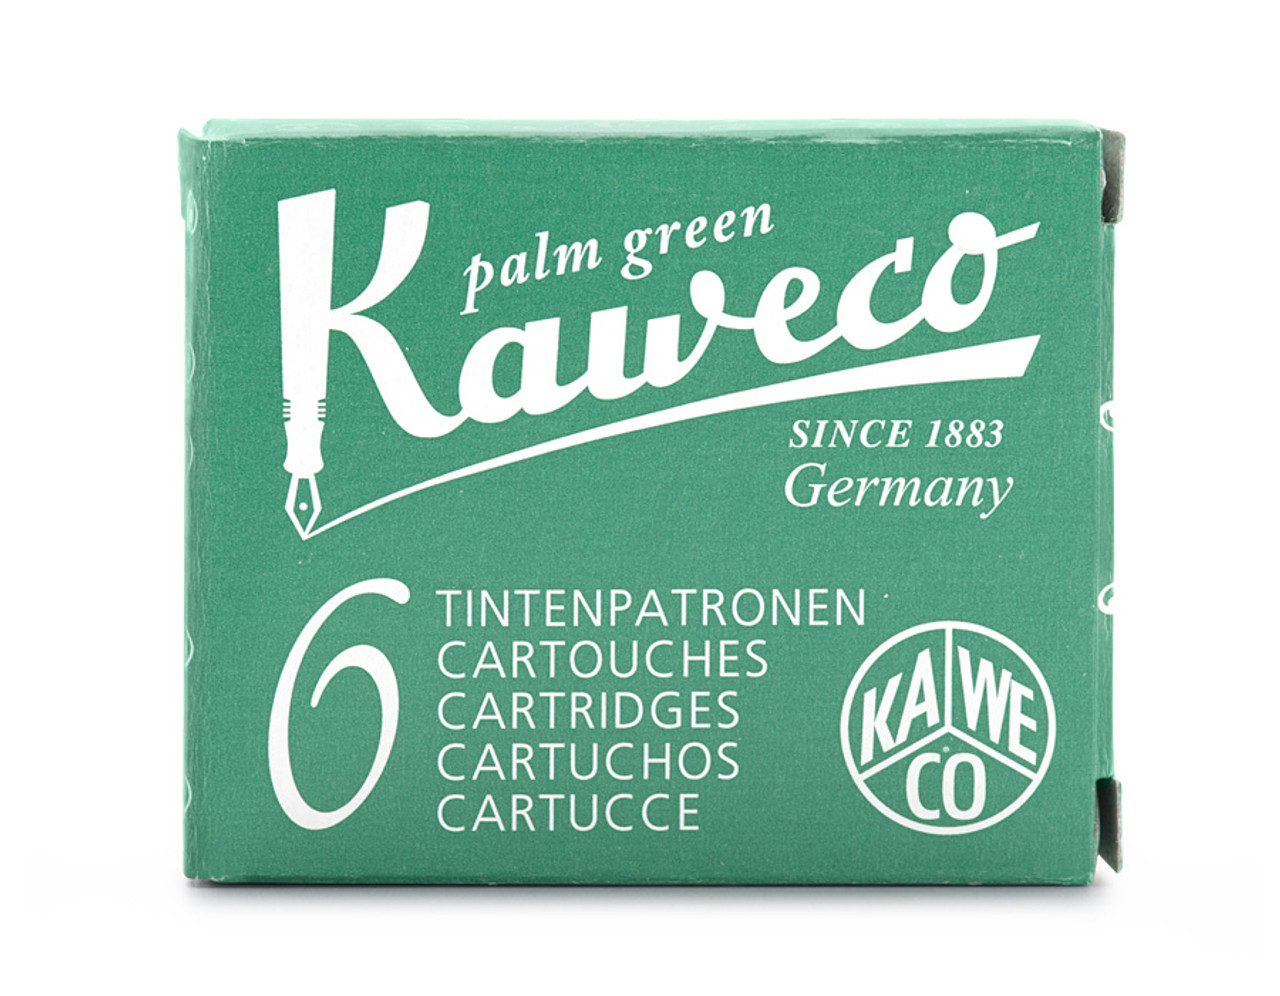 Kaweco ink cartridges, palm green